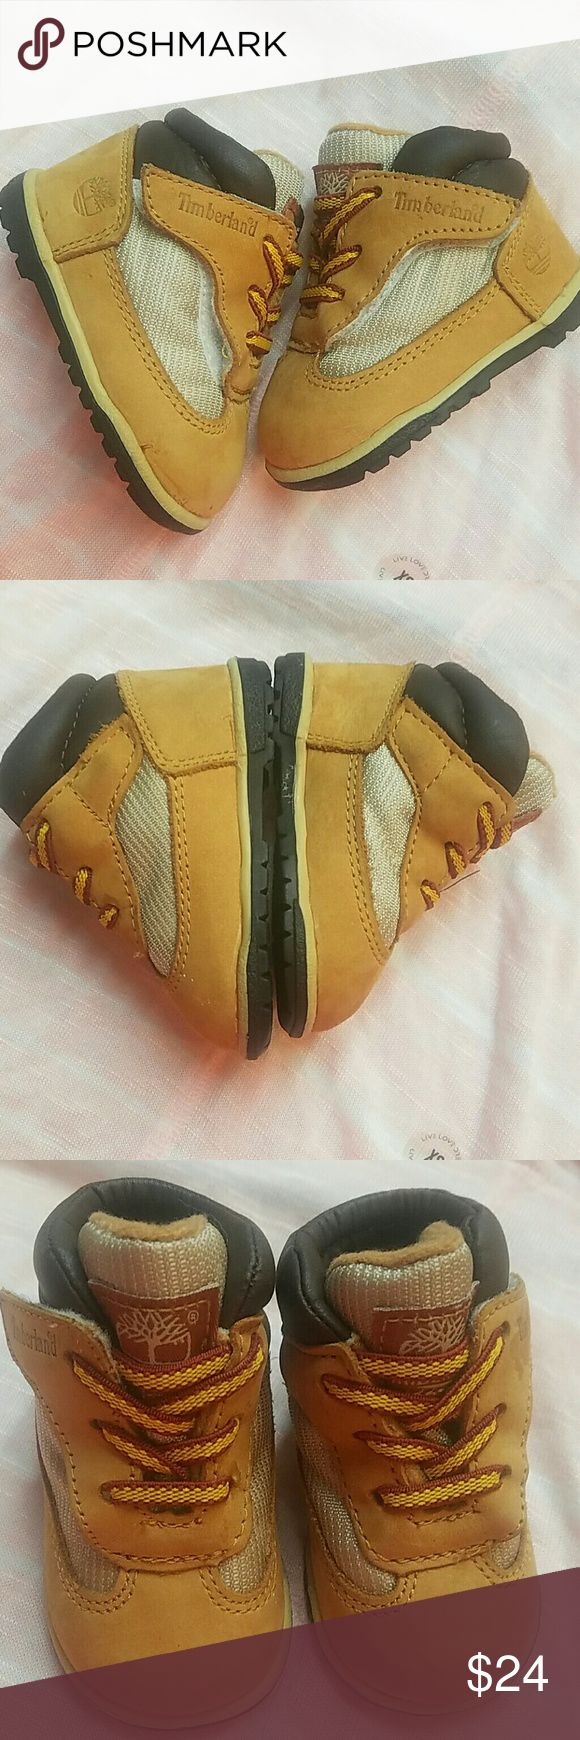 Timberland Baby Boots Size 1. Great condition. Super cute! Timberland Shoes